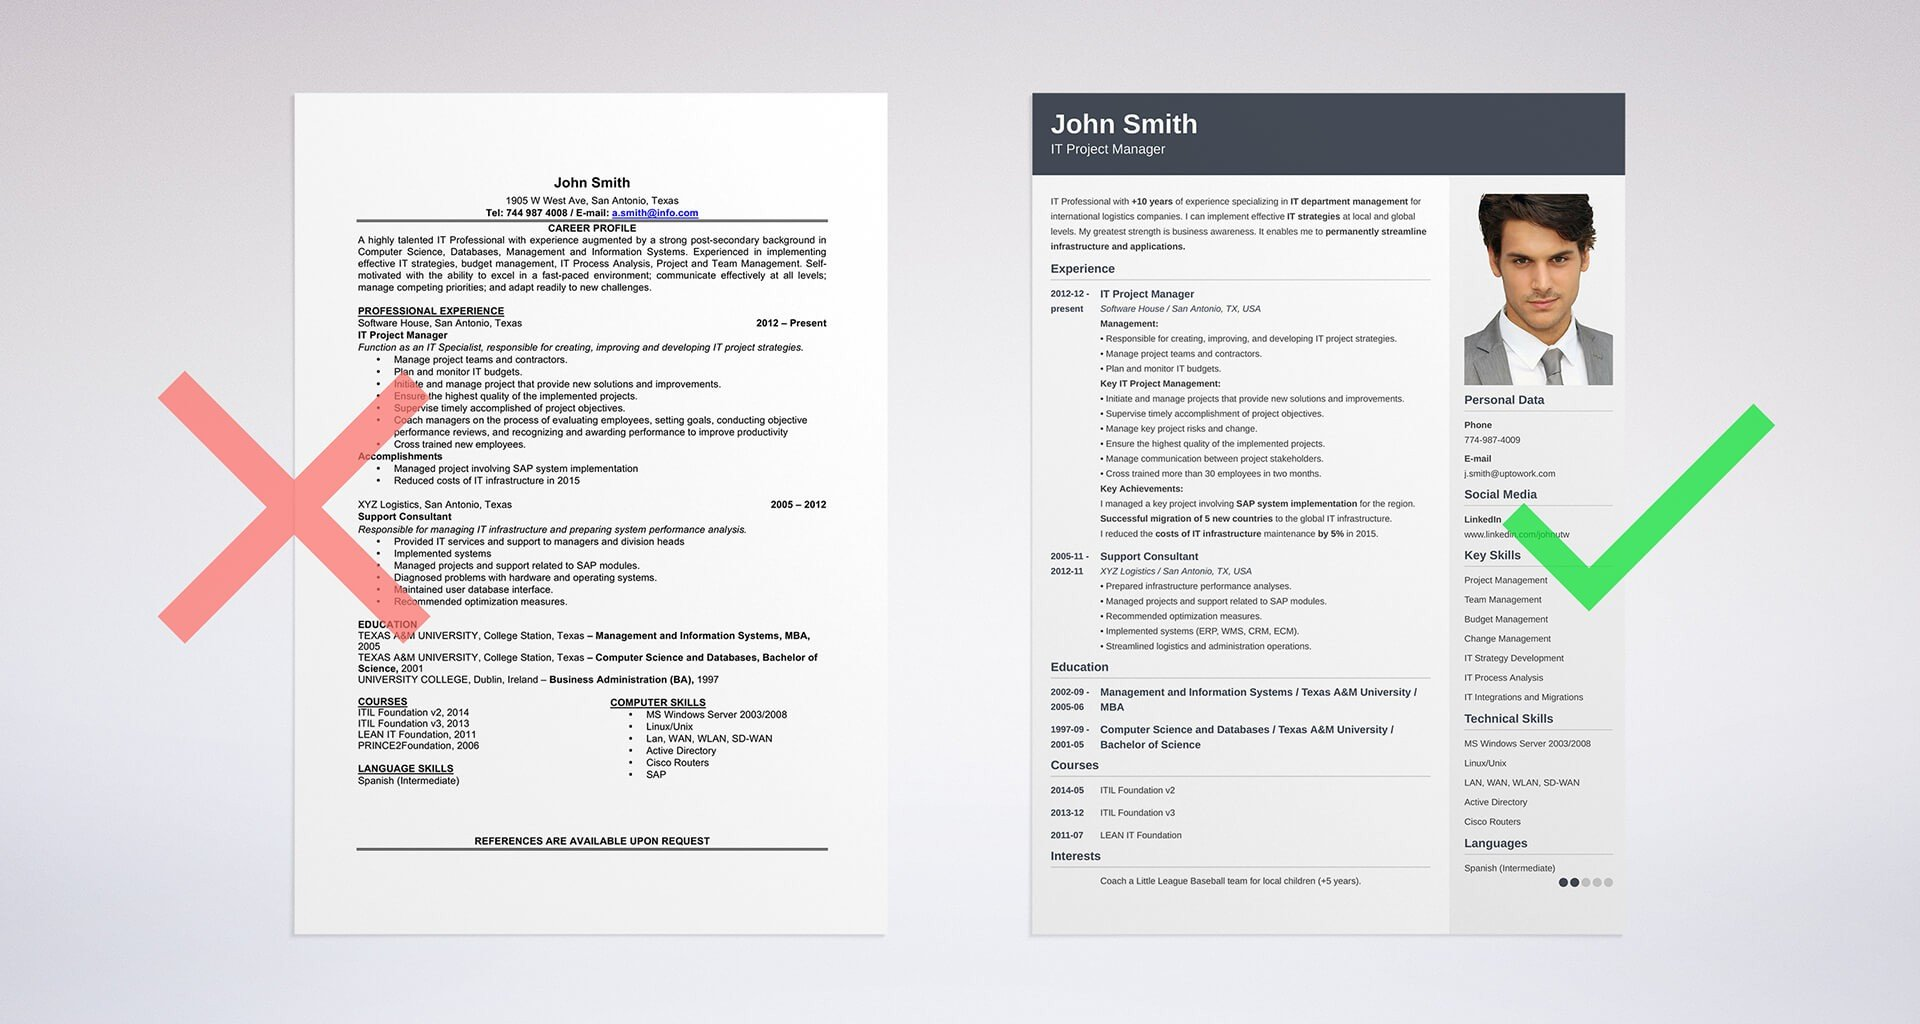 resume interests and activities on a resume